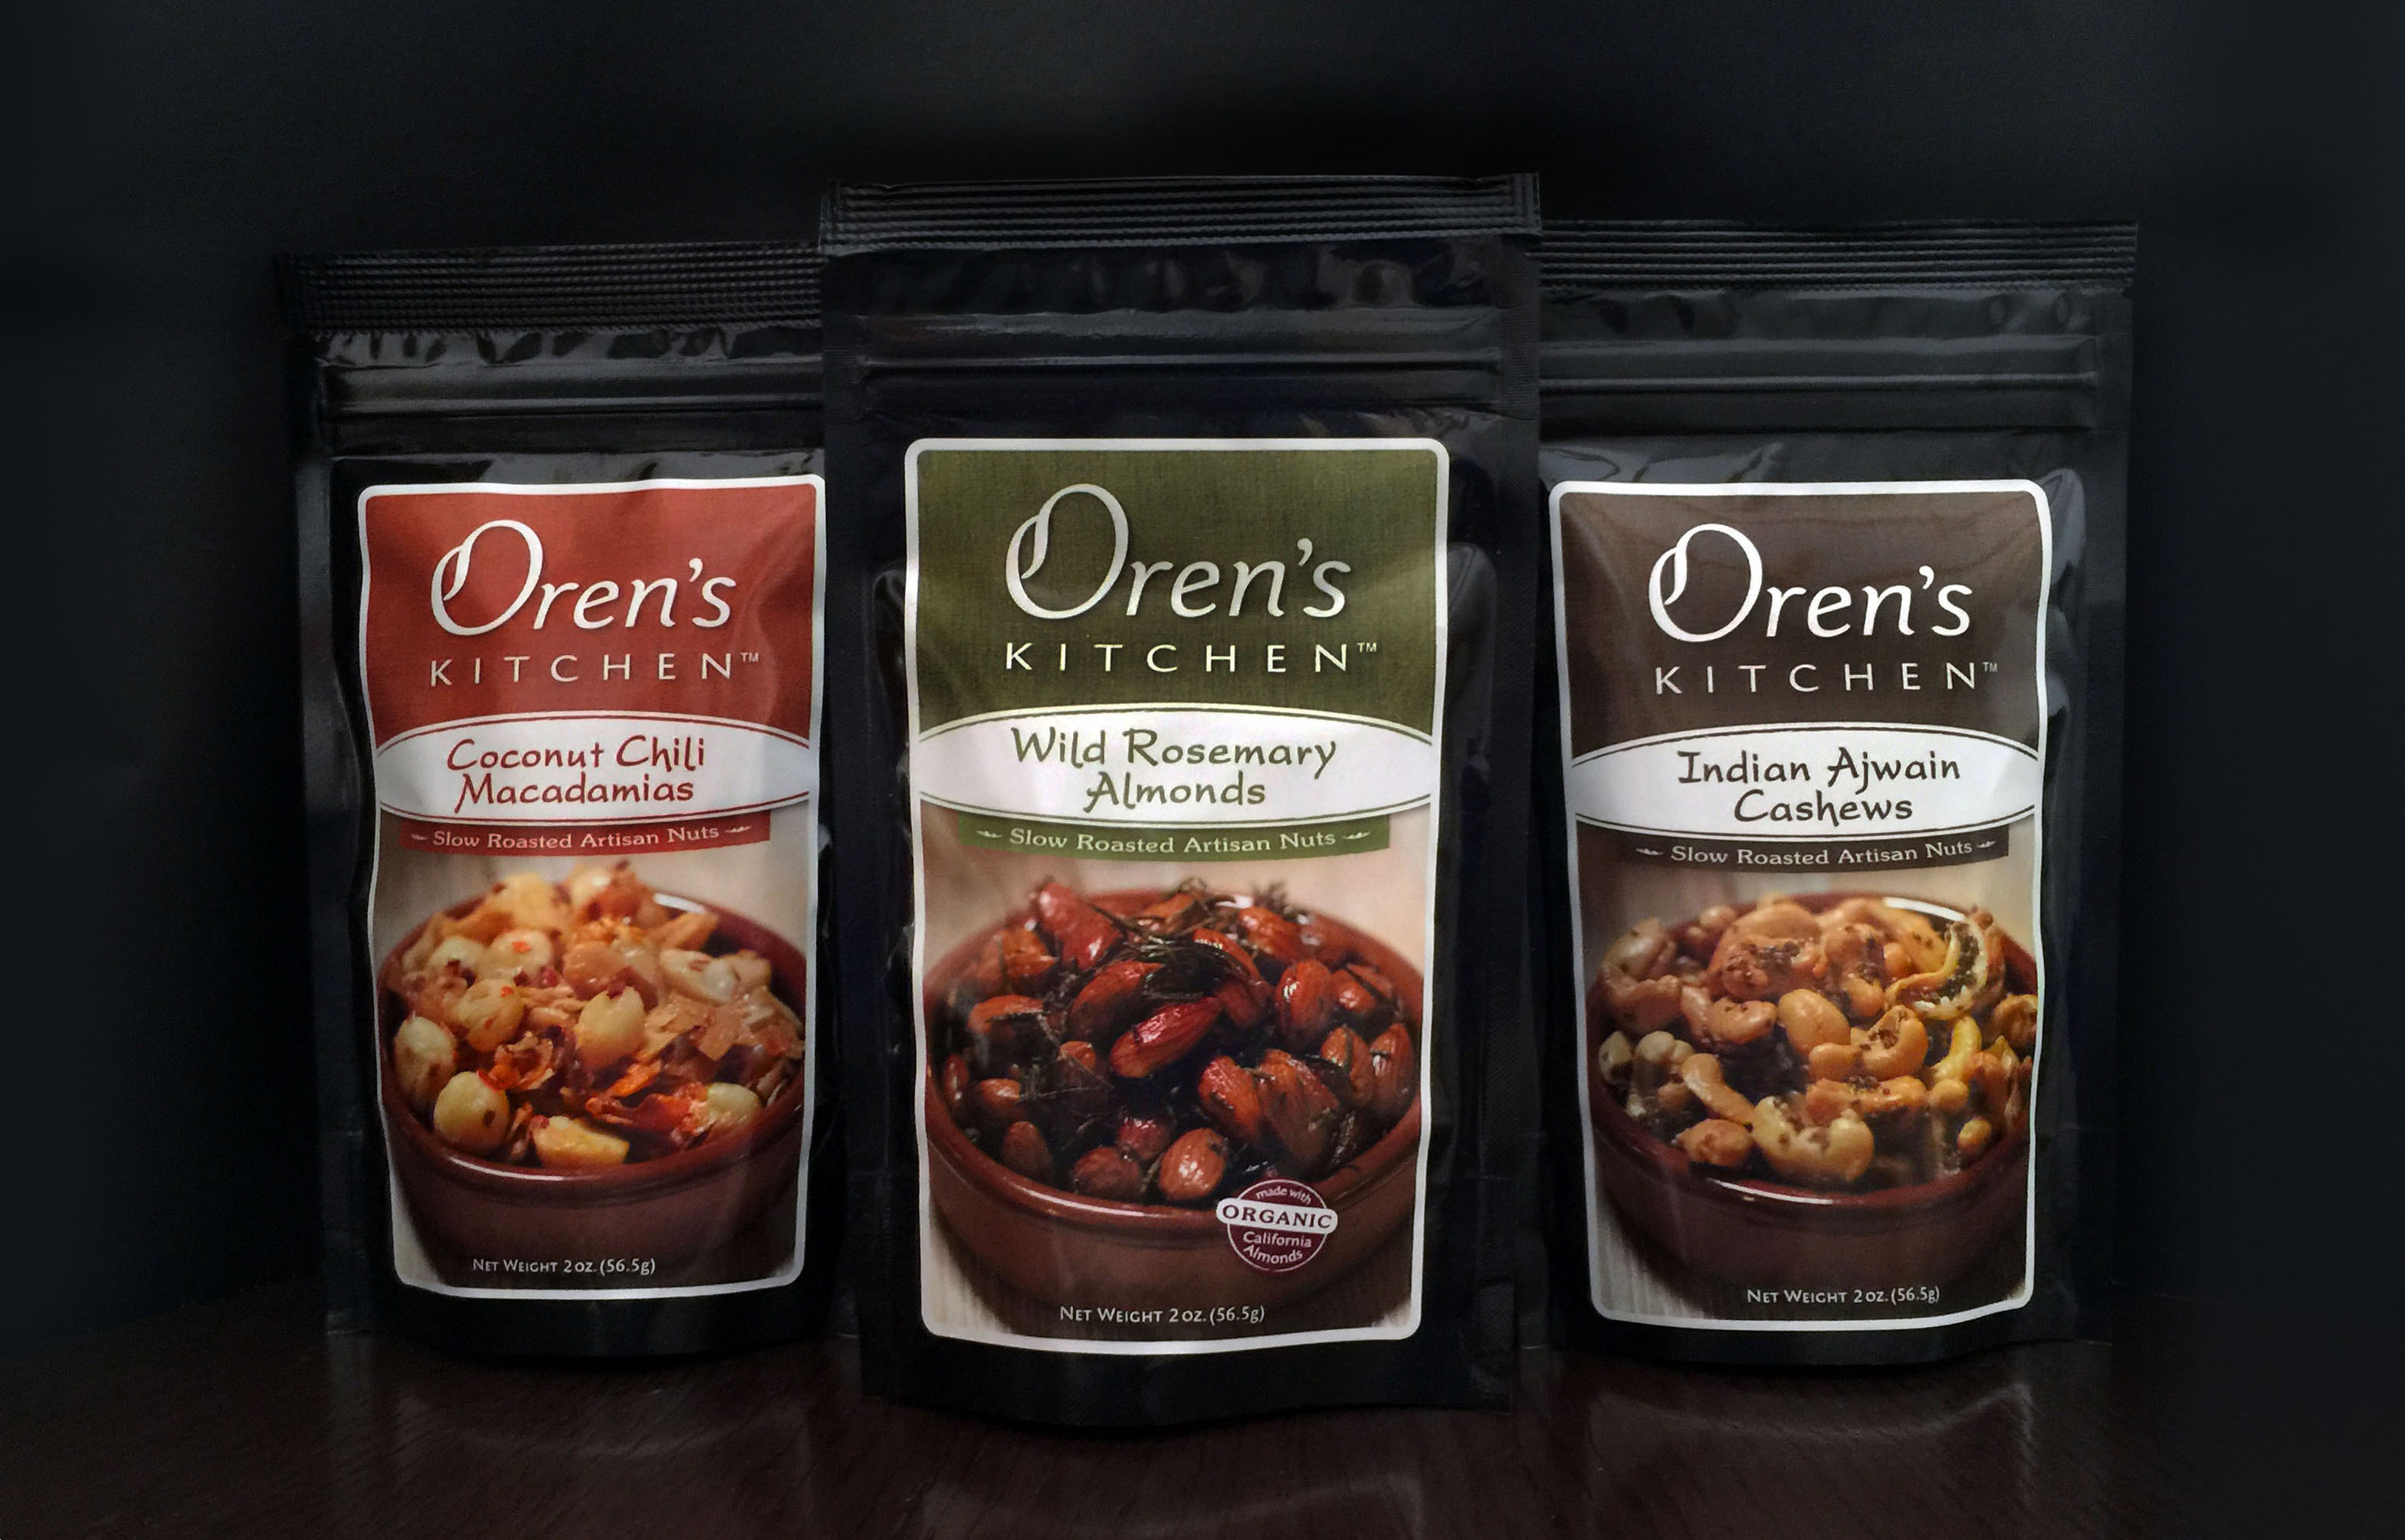 Oren's Kitchen Artisan Nuts